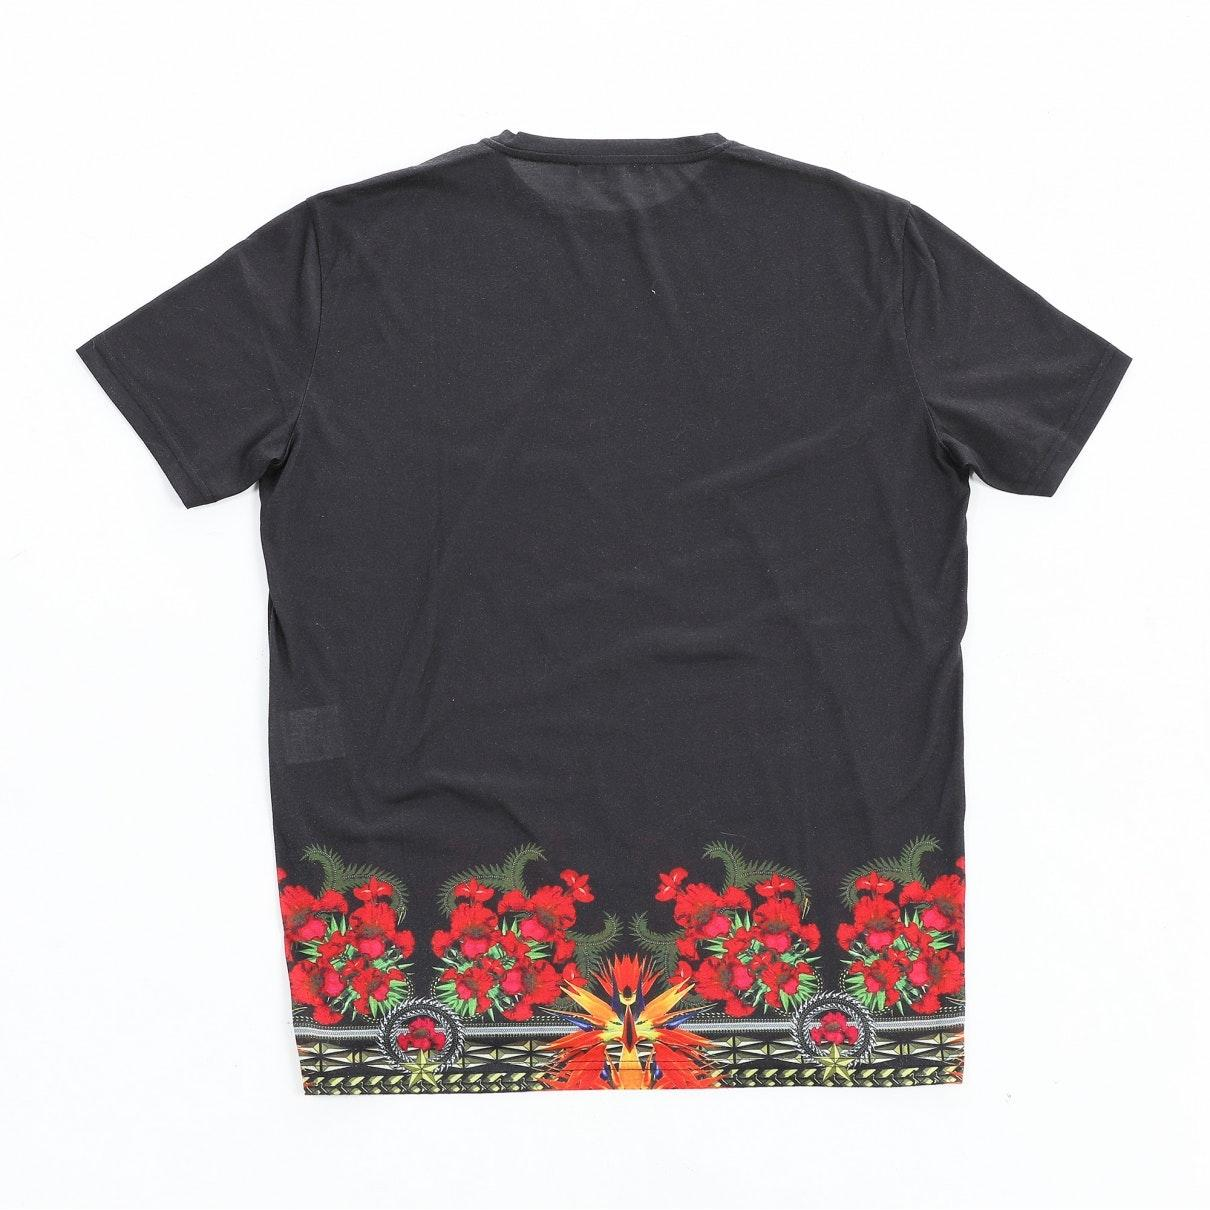 Givenchy Synthetic Black Polyester Top